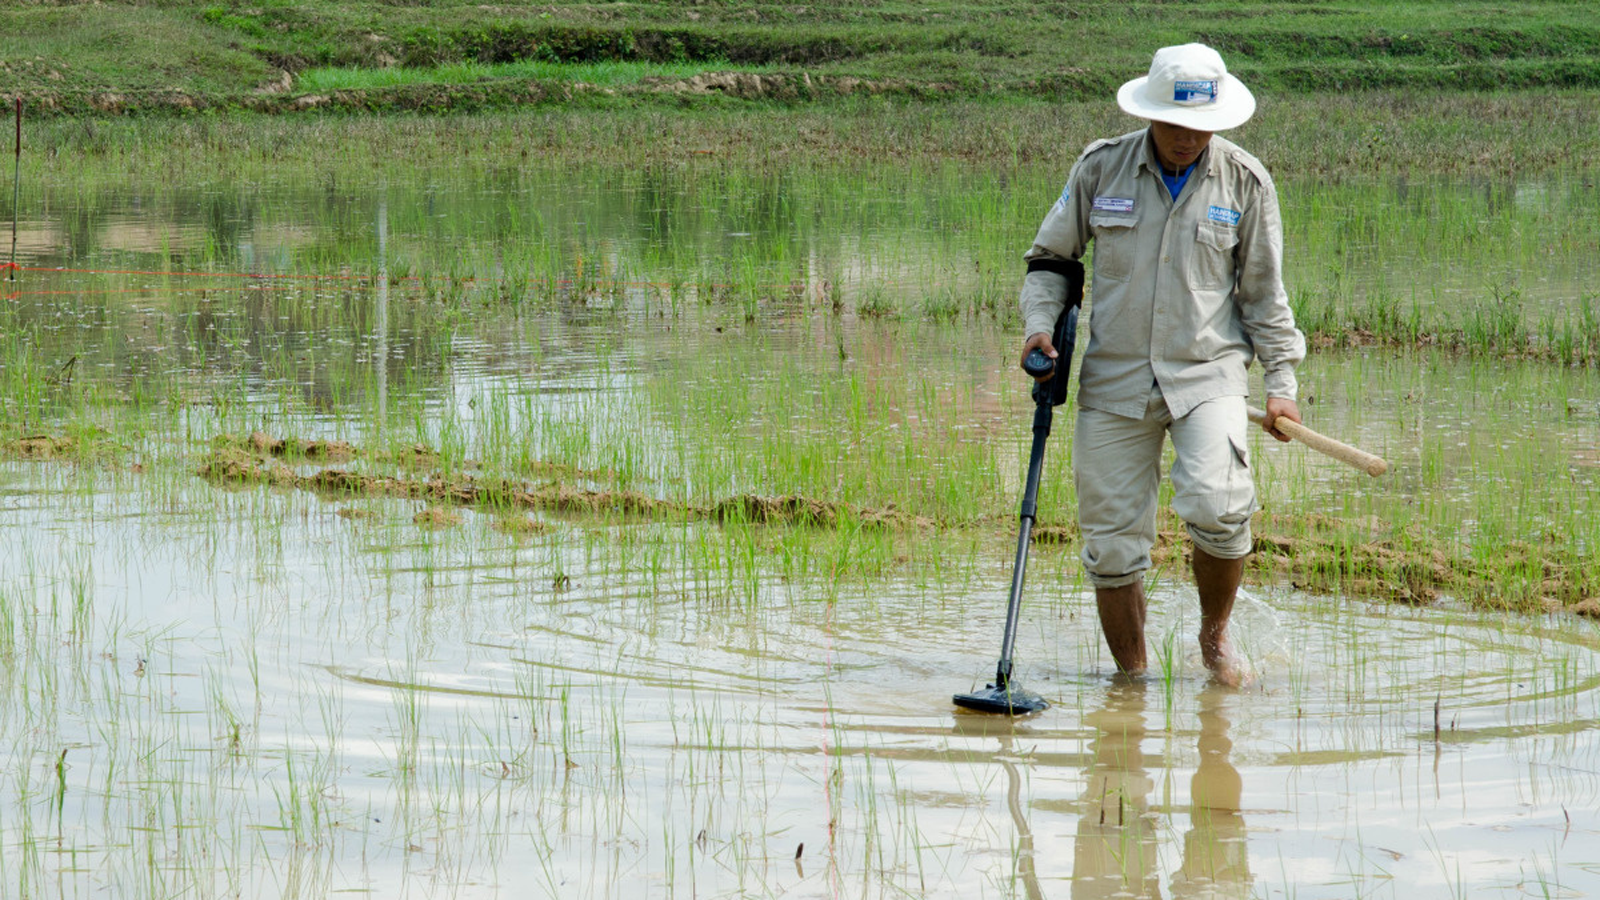 A deminer in Laos looks for UXO in a swamp